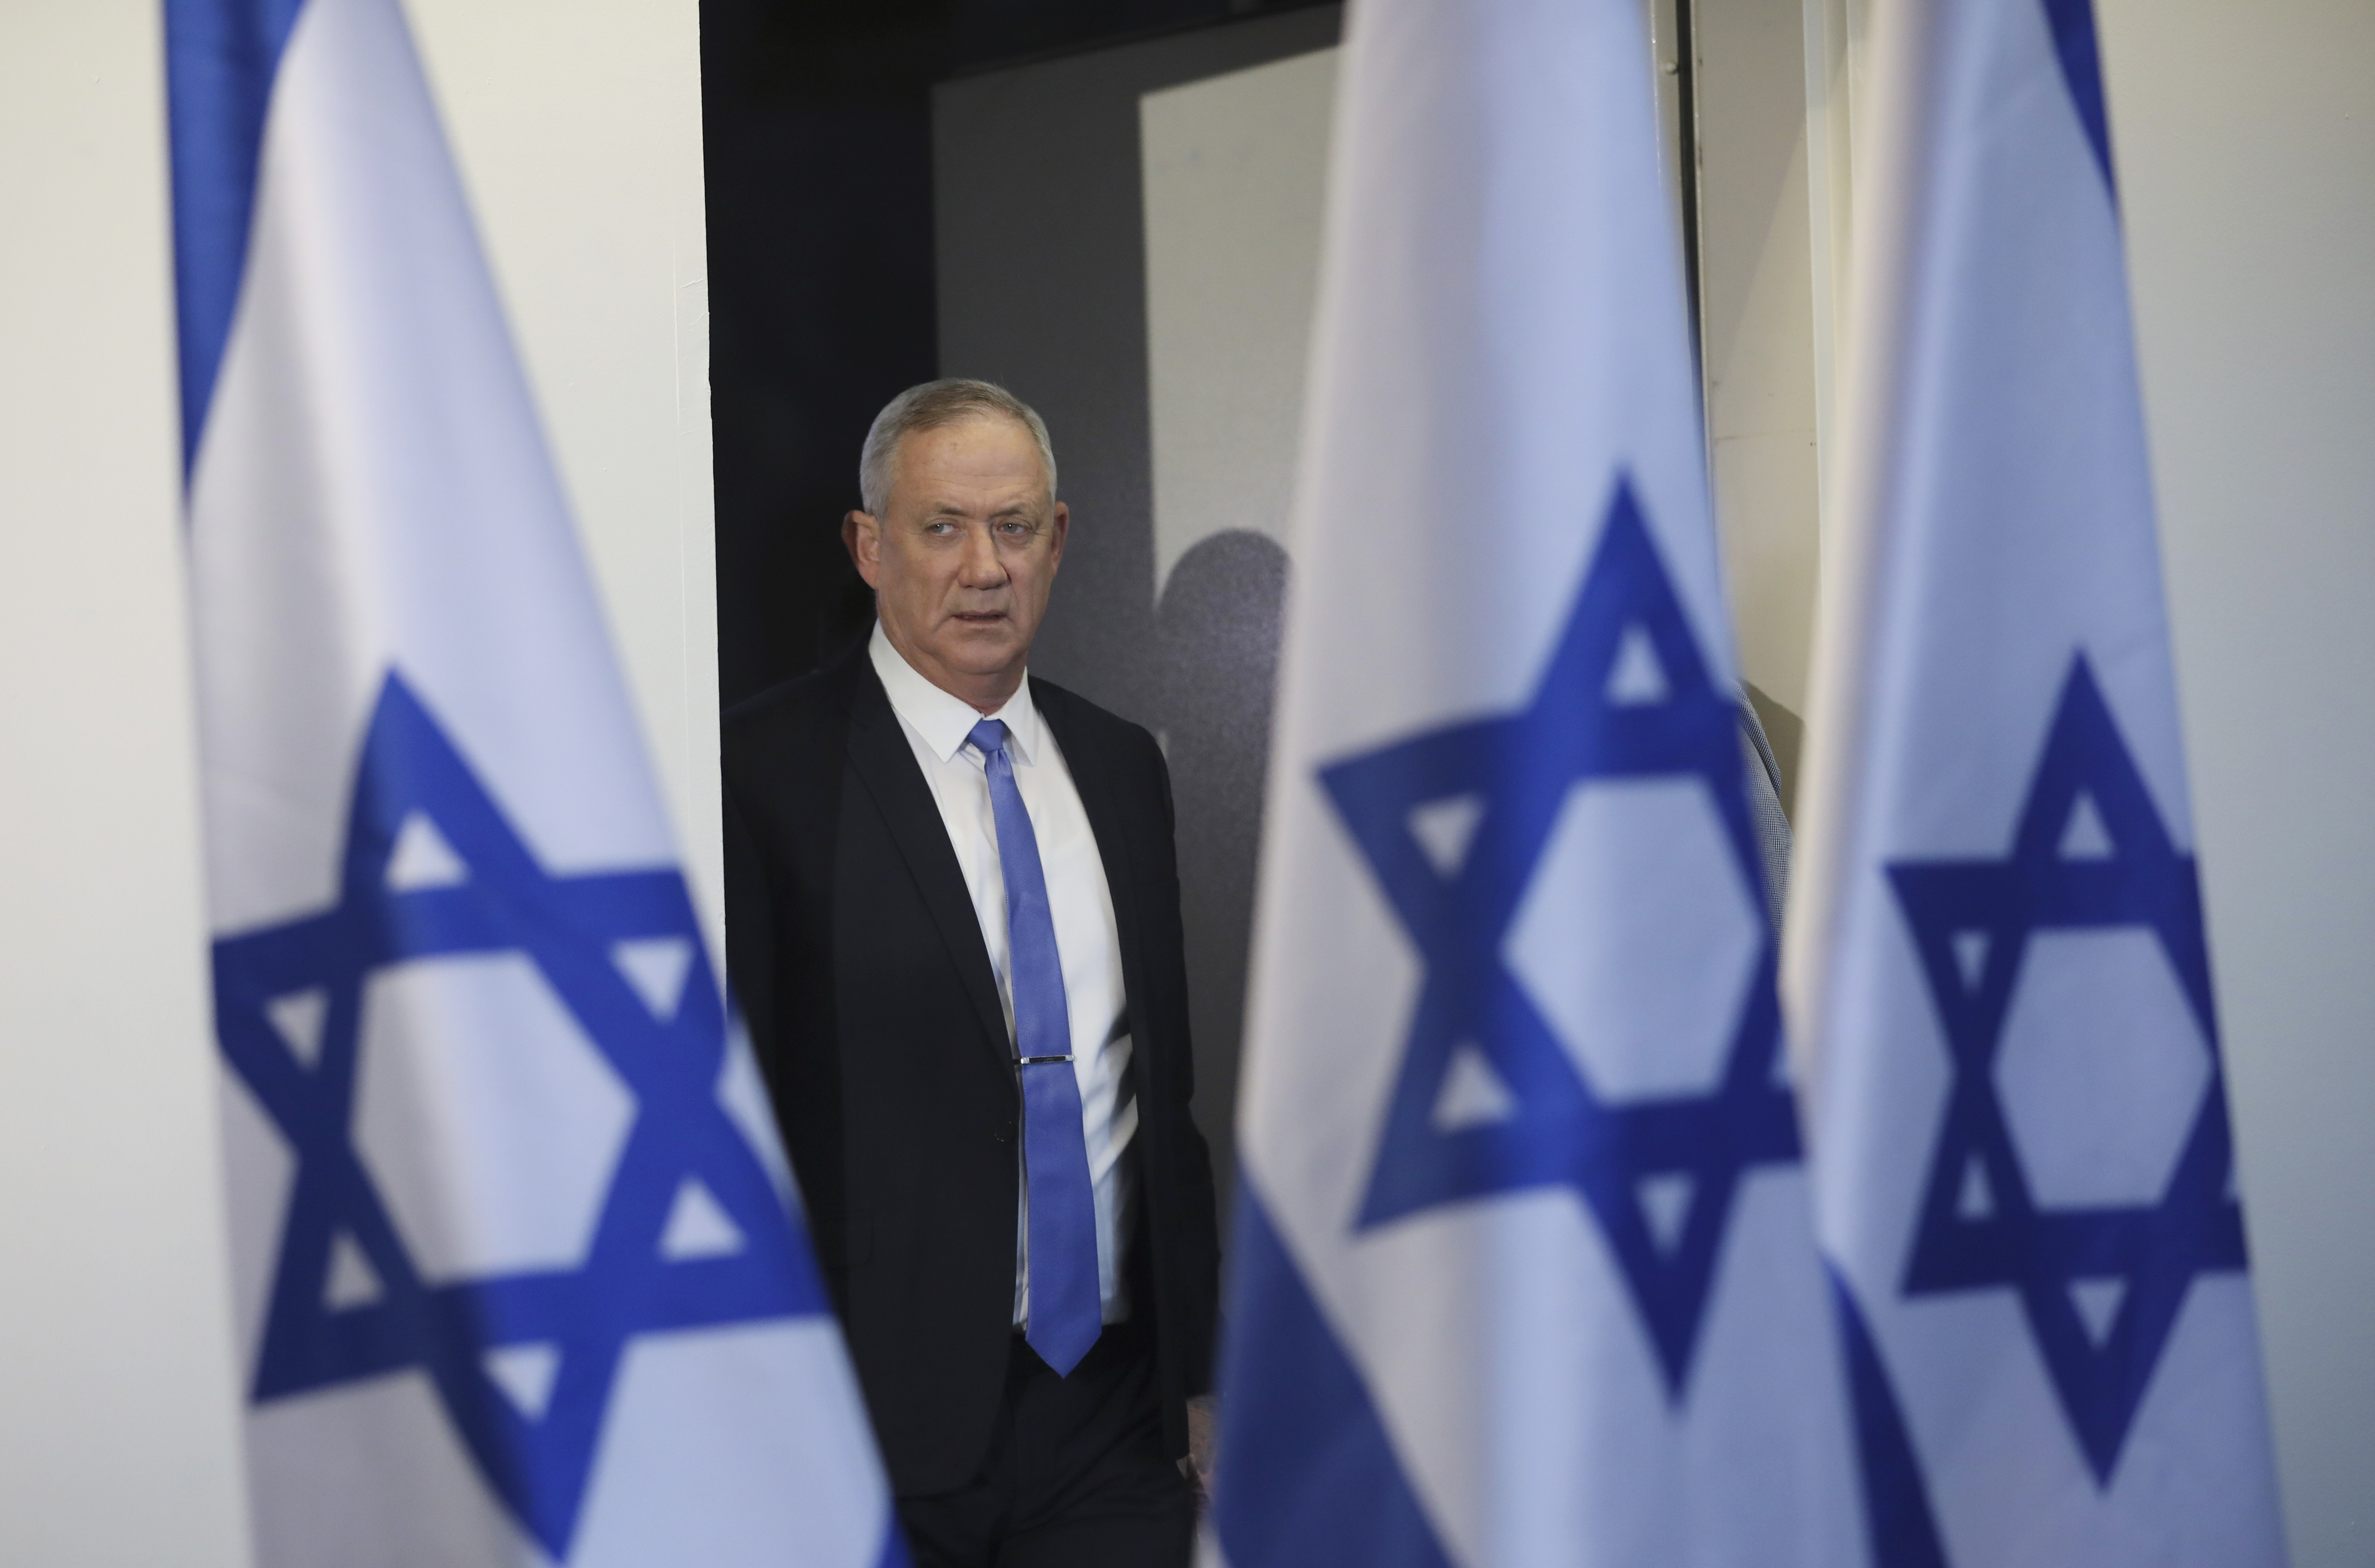 Benny Gantz, Netanyahu rival, accepts White House invitation to discuss peace deal with Donald Trump